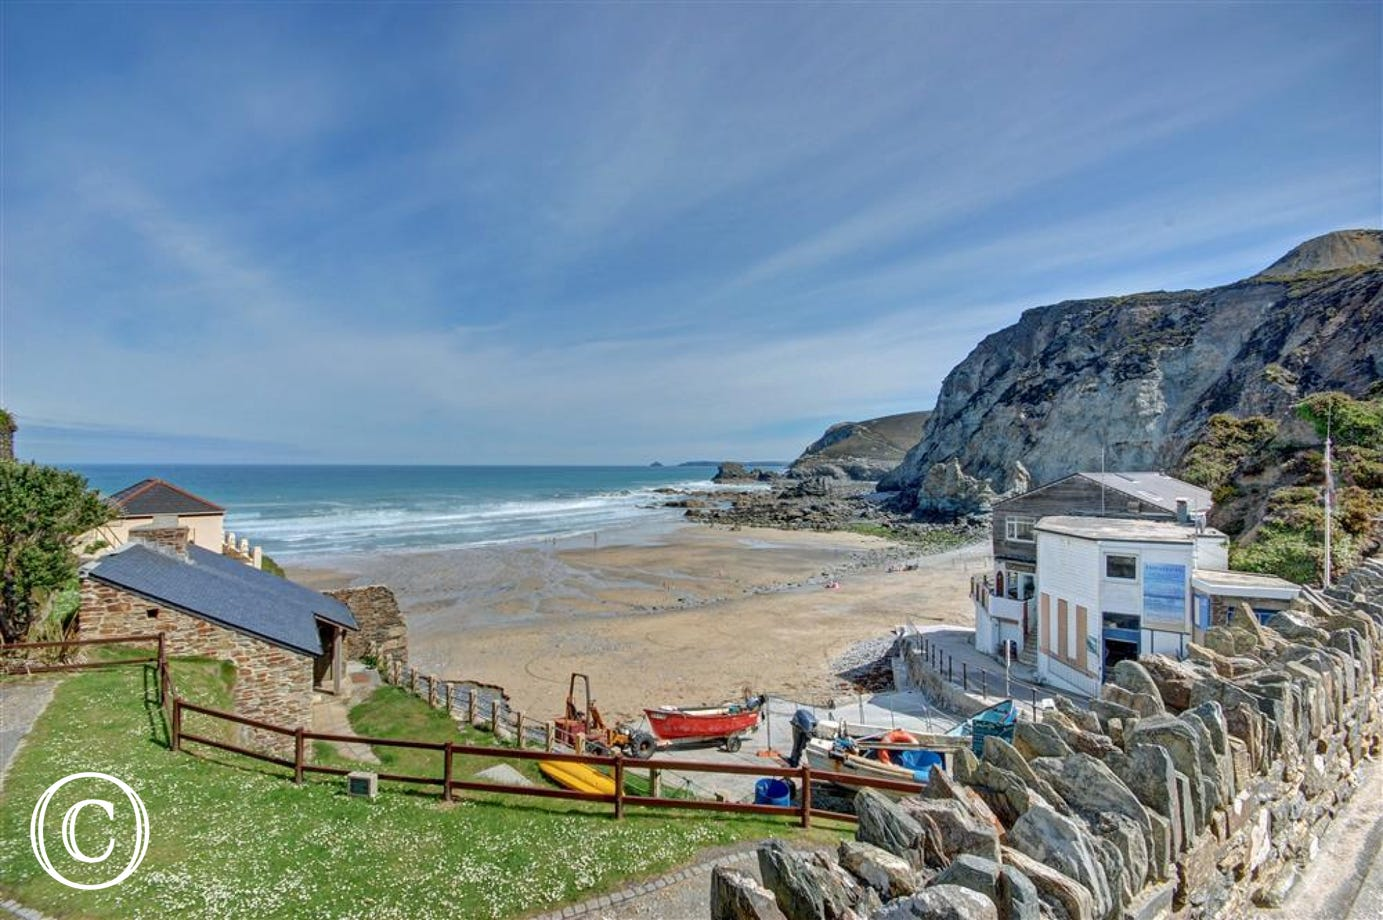 The local beach at Trevaunance Cove